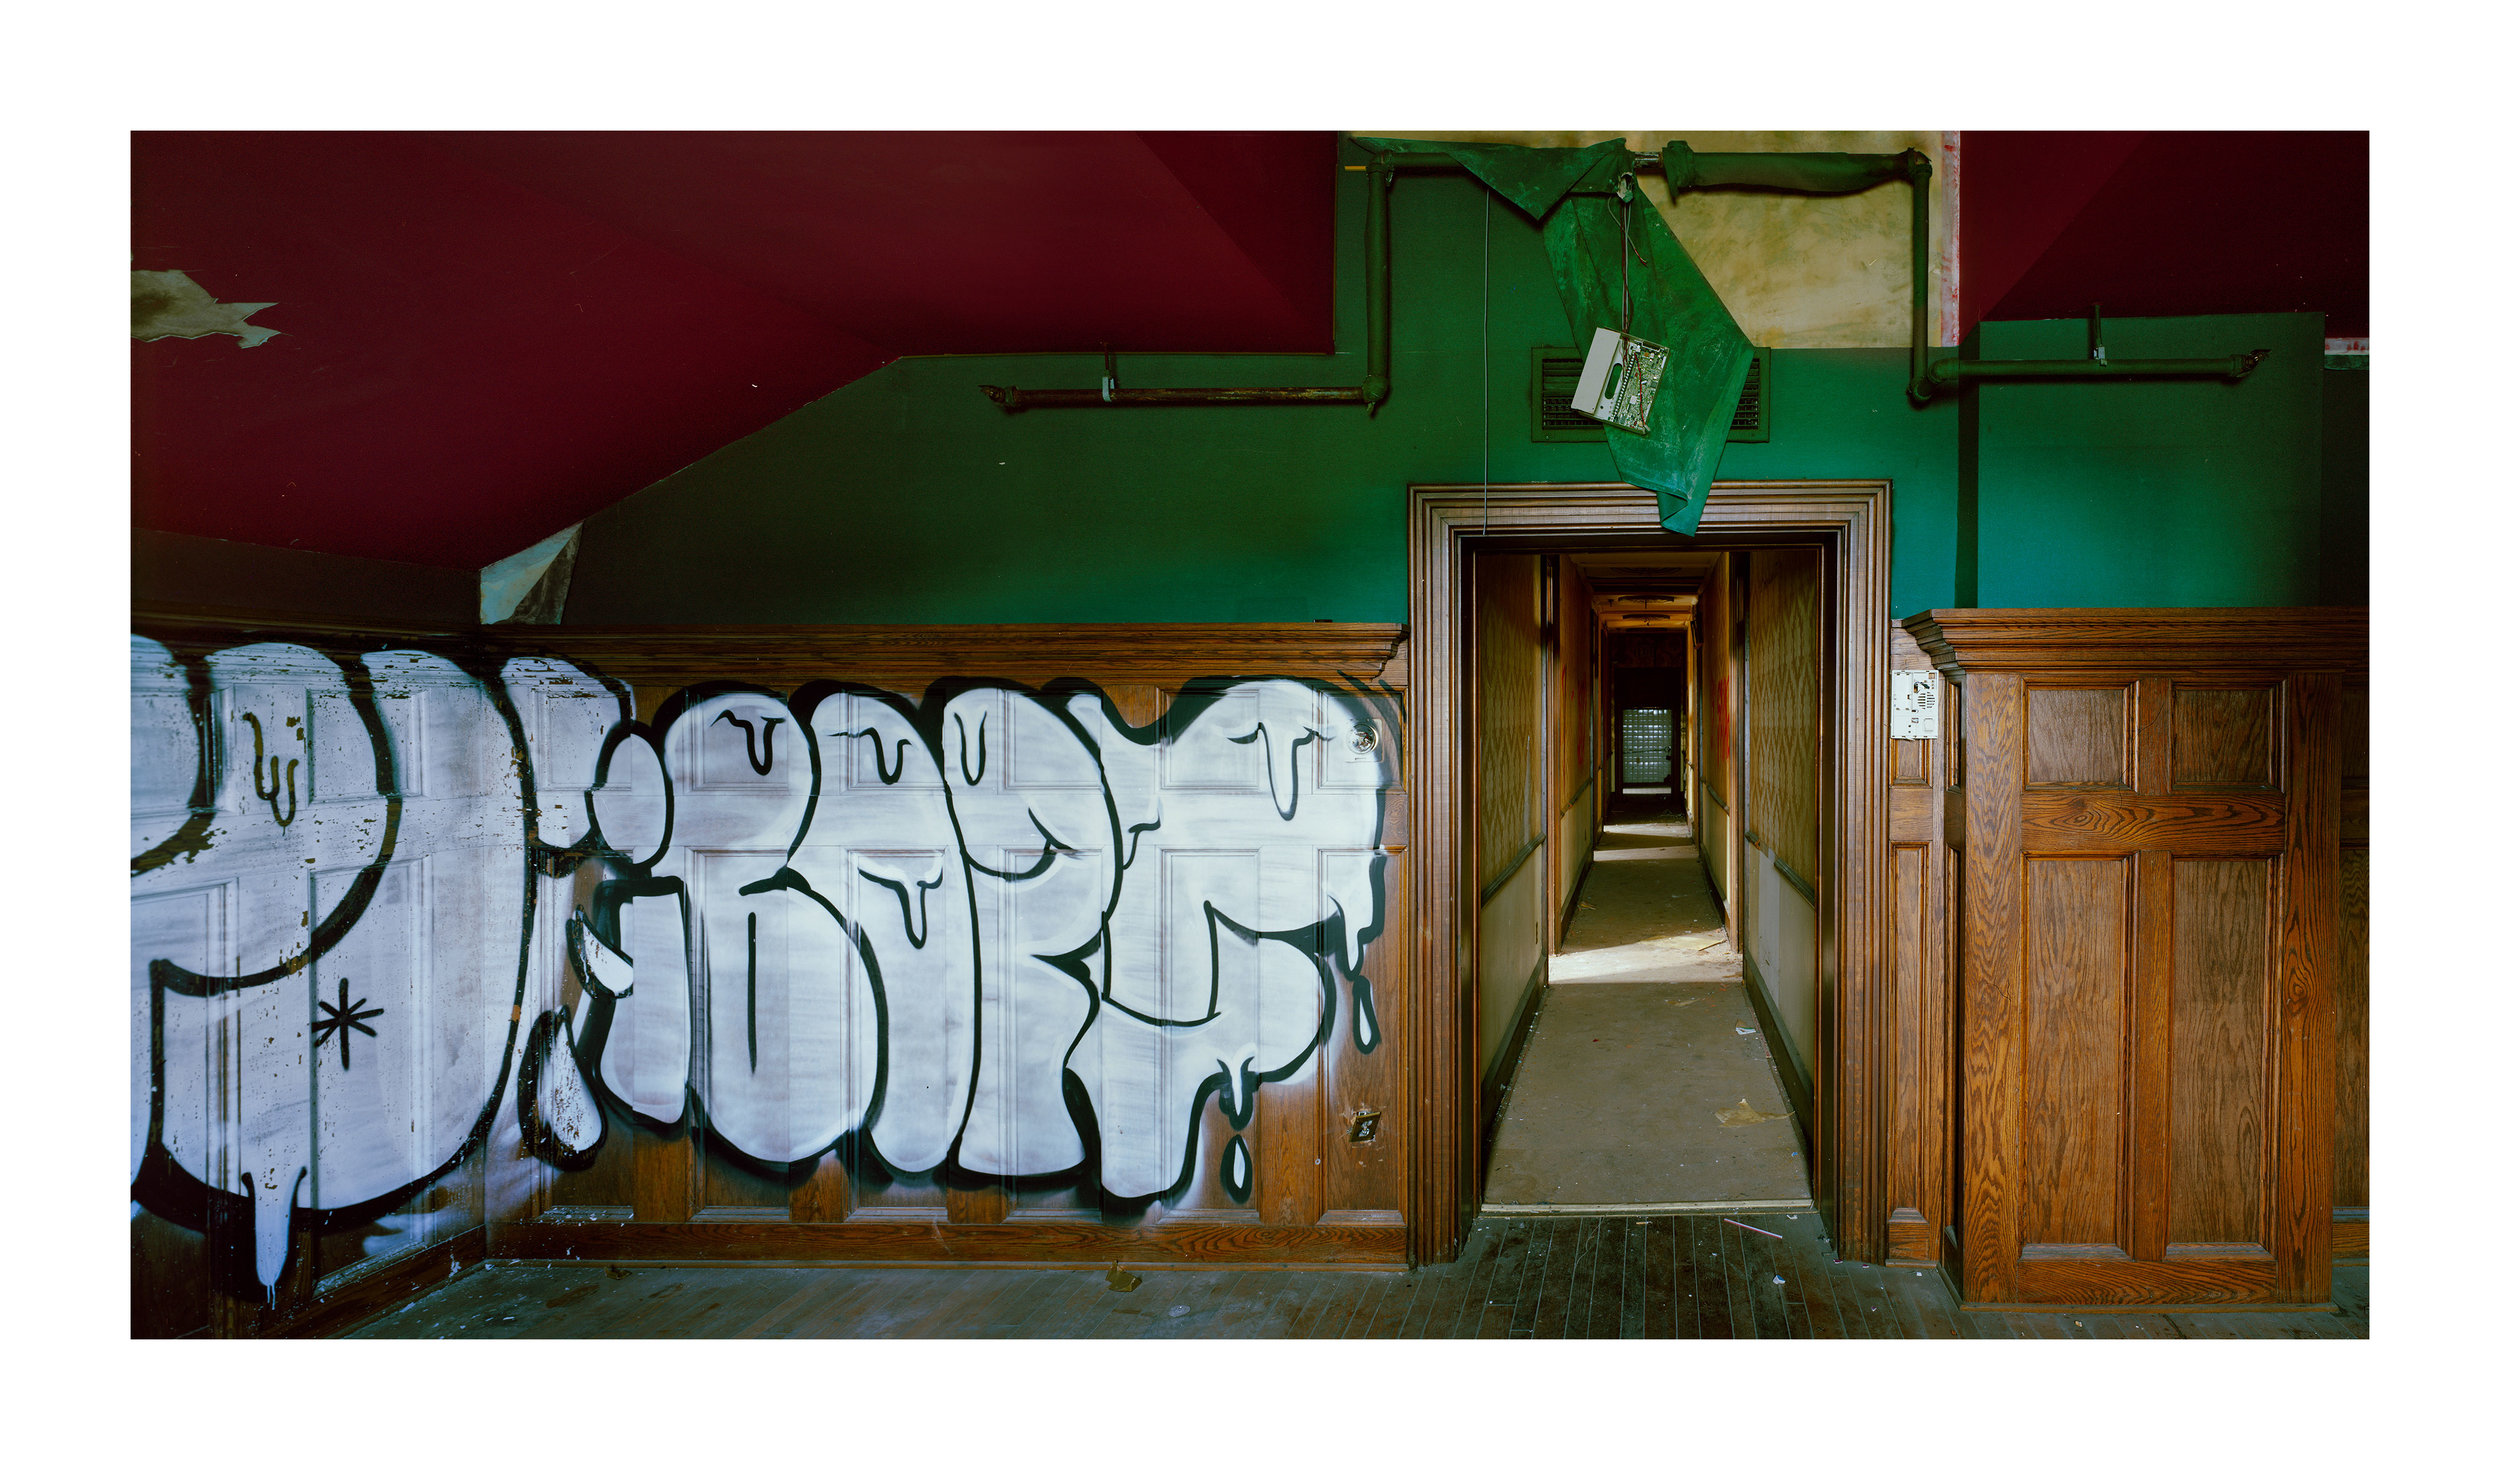 """""""Central Railroad of New Jersey Station, 1-75 S Wikes-Barre Blvd, PA"""" , 2018 Archival pigment print, 20""""x16""""  Courtesy Yoav Friedlander & Carrie Able Gallery"""